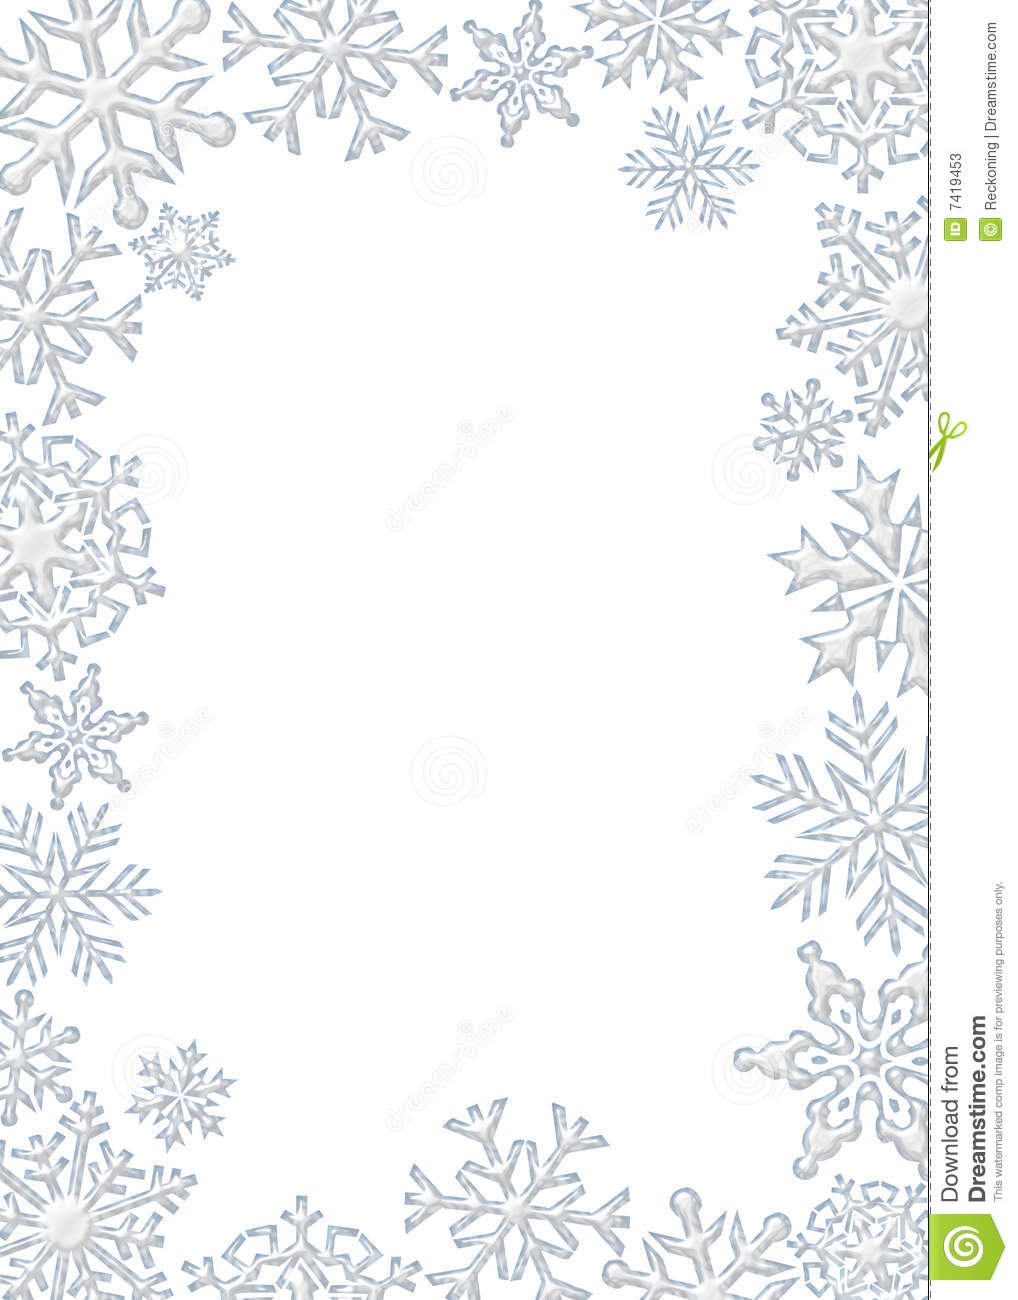 Graphic Illustration Of White Snowflake Border